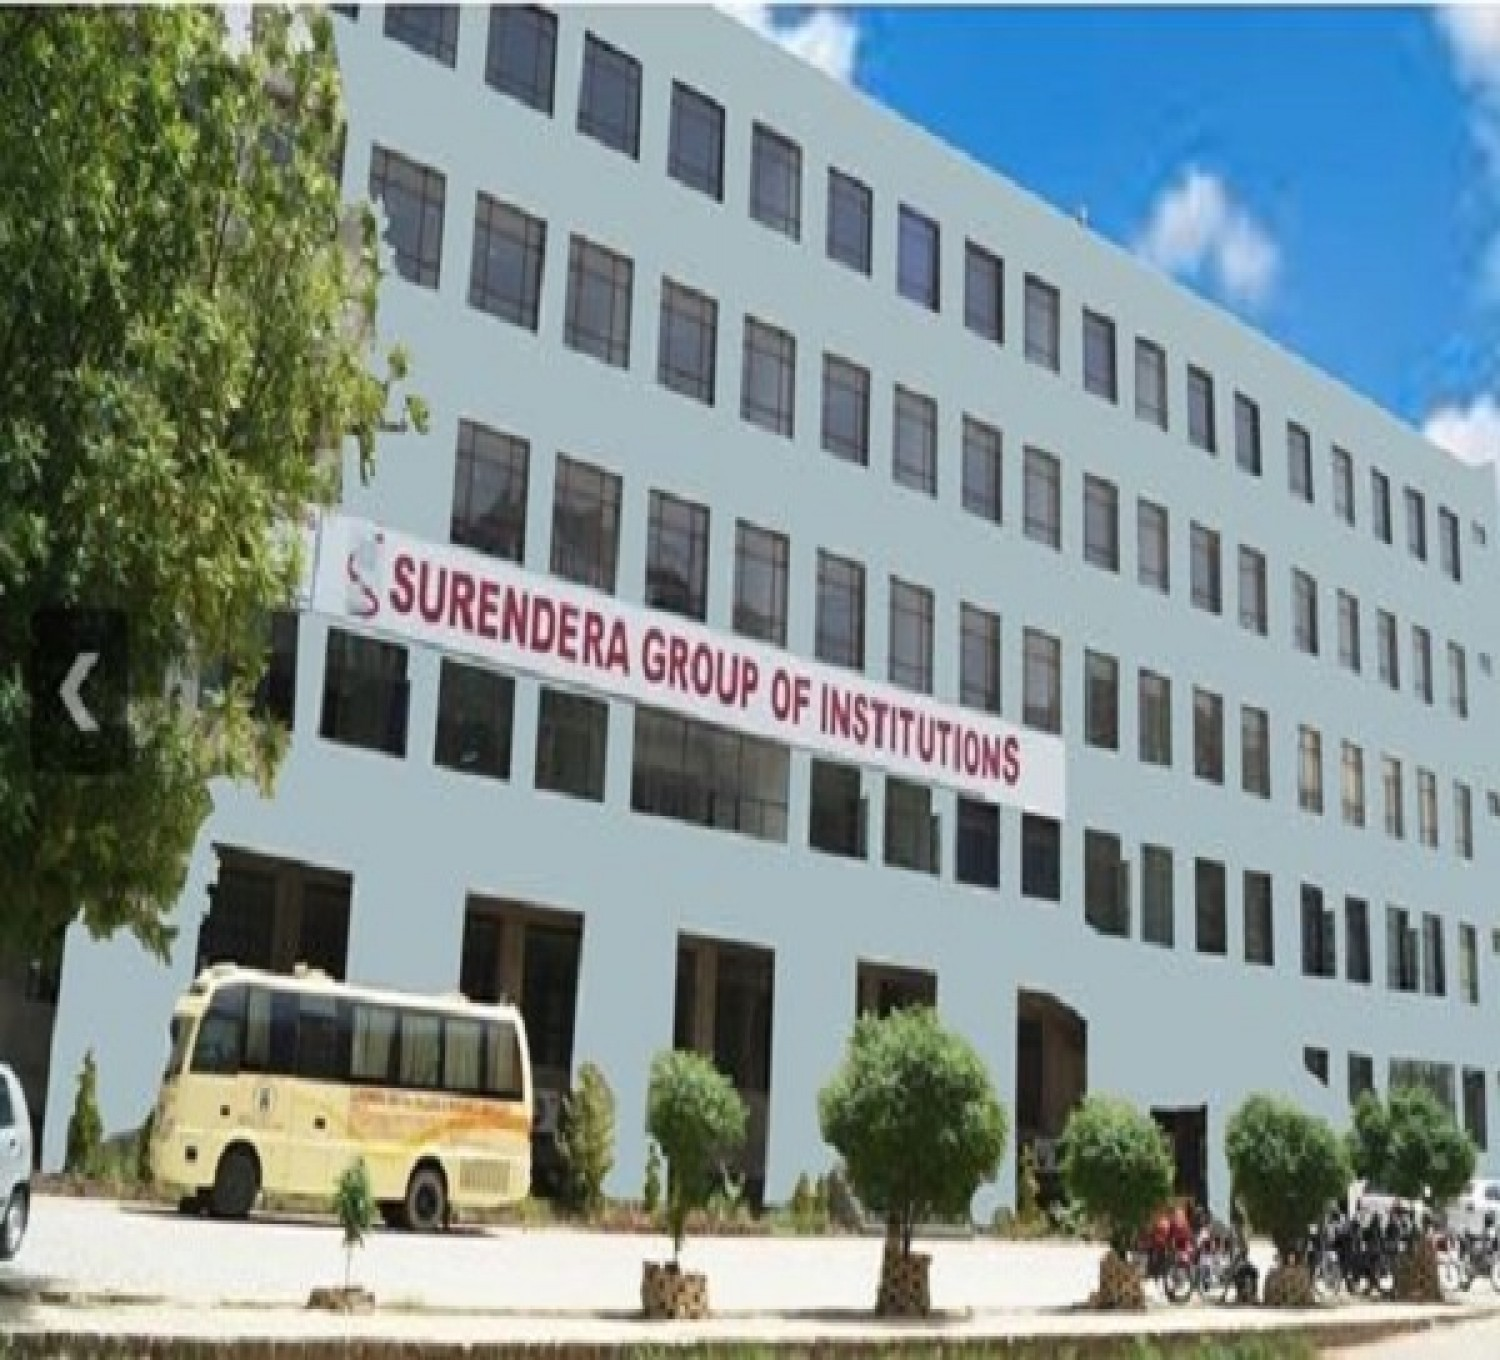 Surendra Group Of Institutions-cover